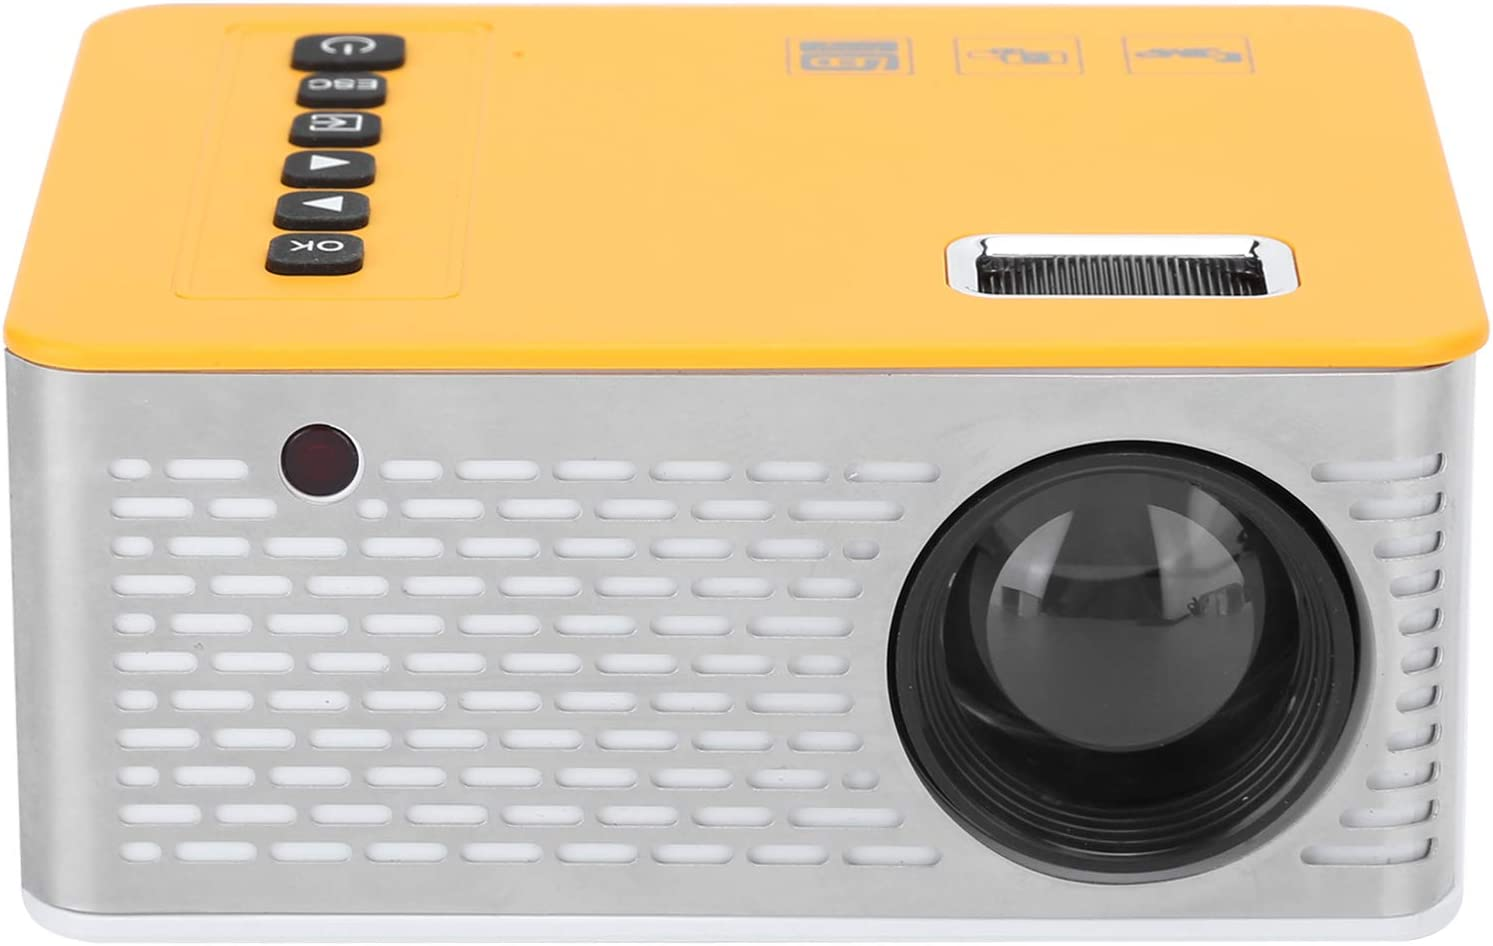 Limouyin Mini Alternative dealer Projector Portable LED Smart with Max 44% OFF Focus